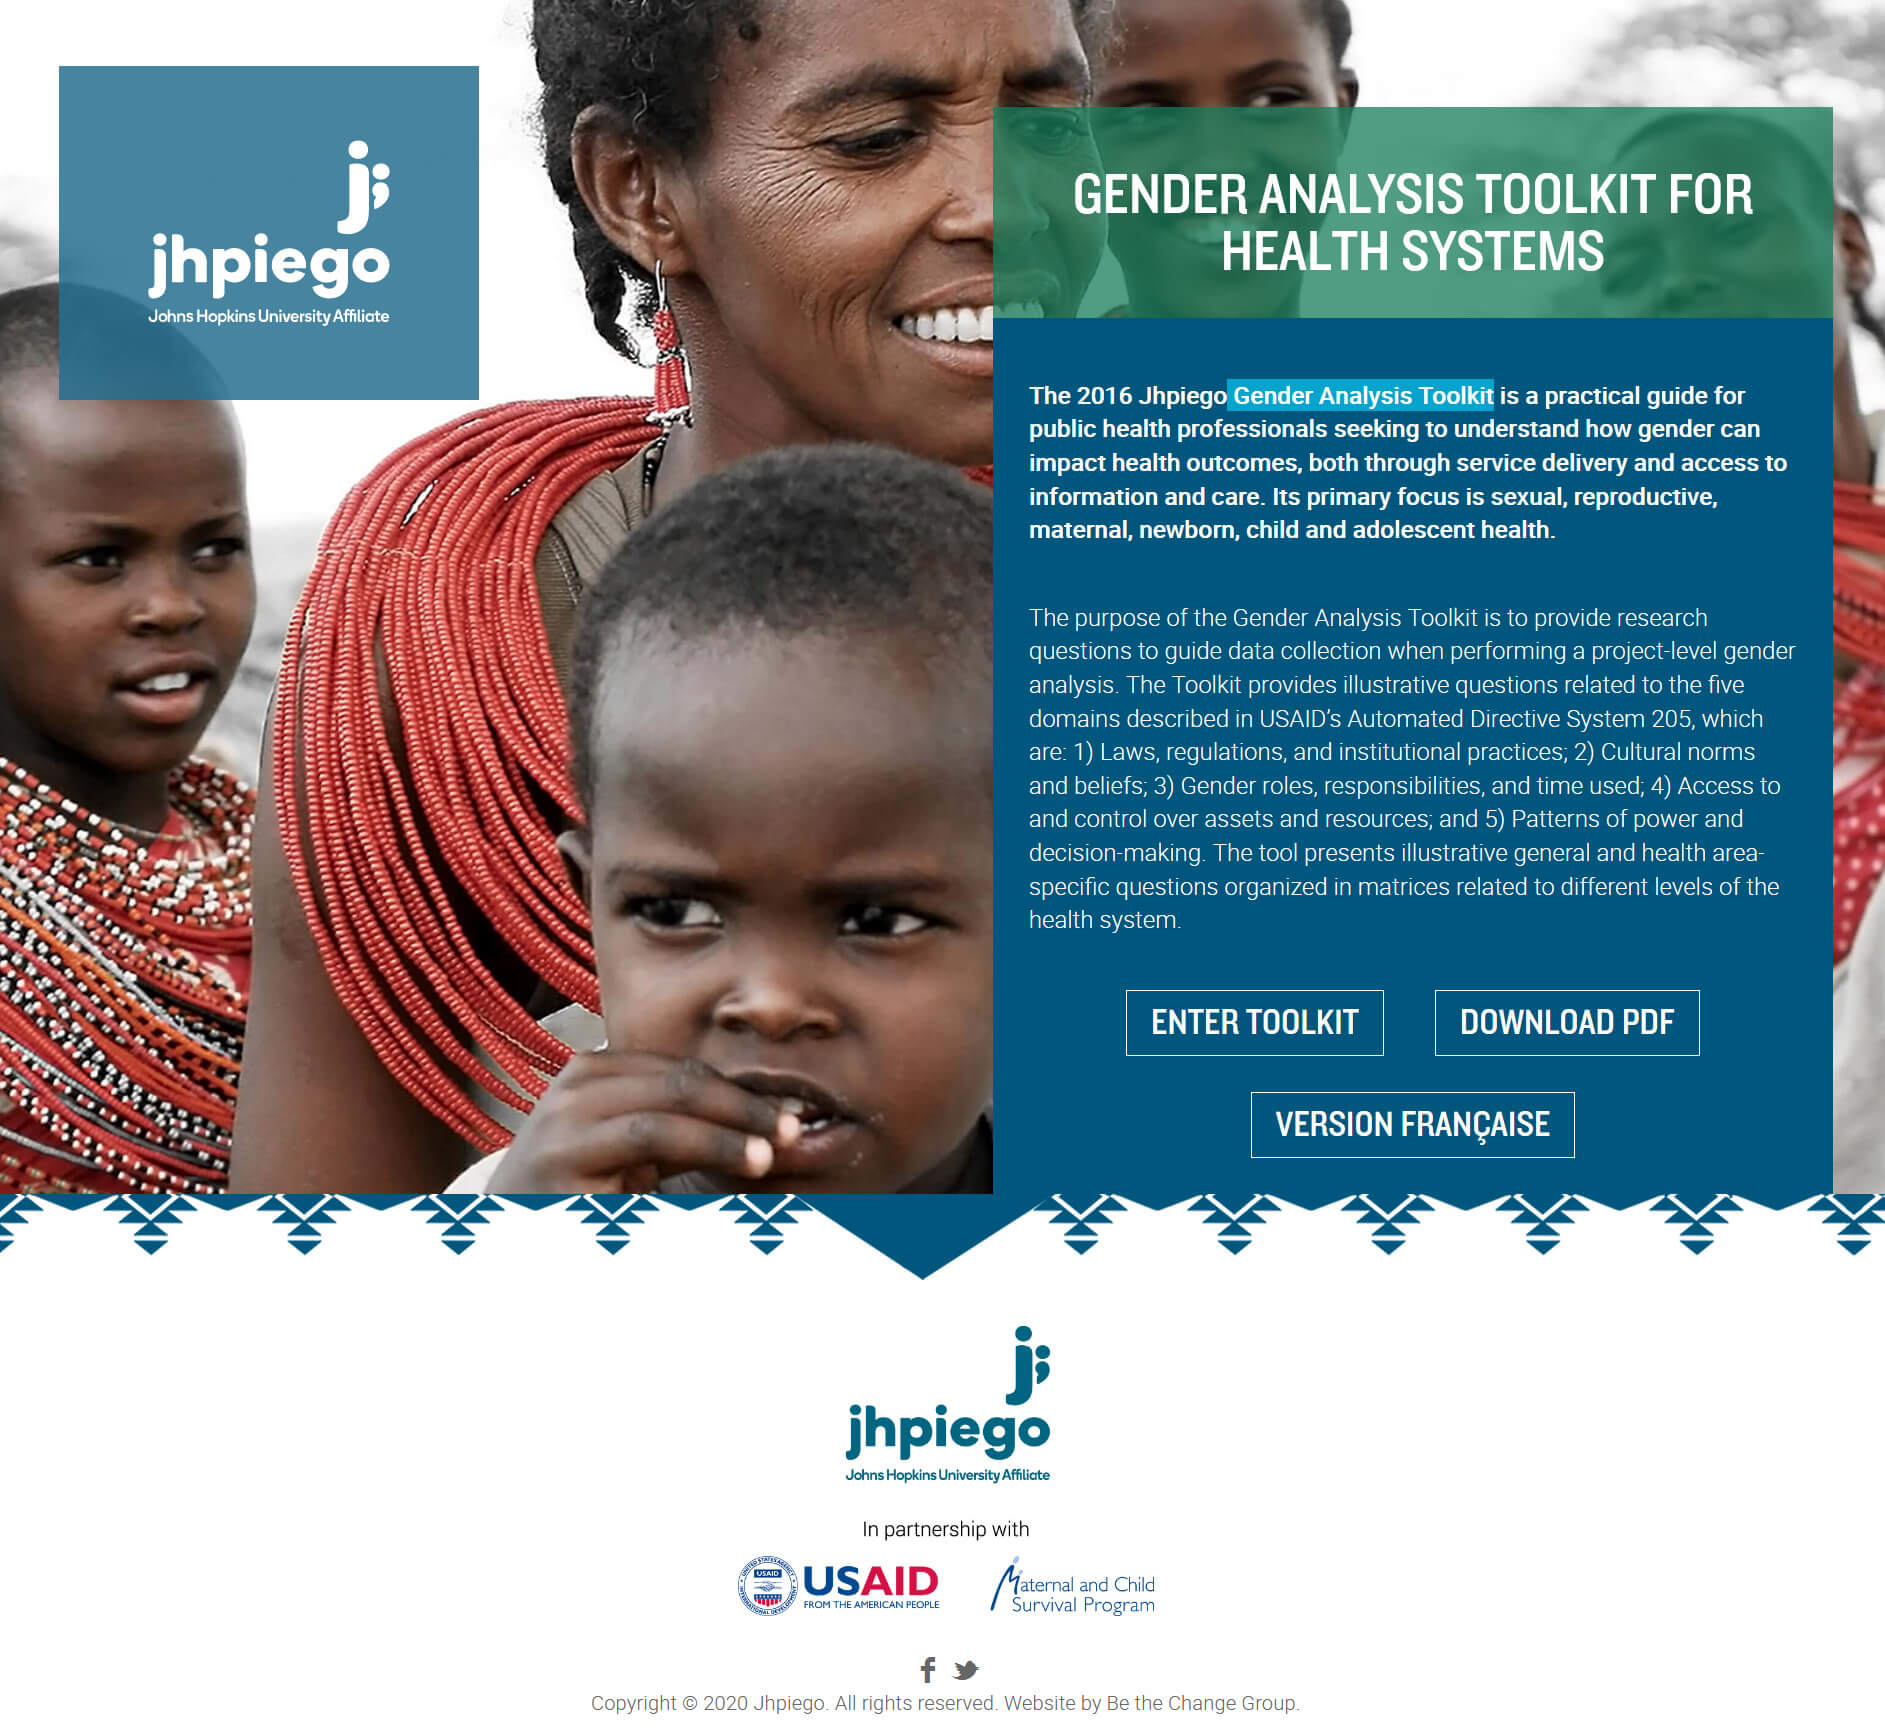 Gender analysis toolkit for health systems